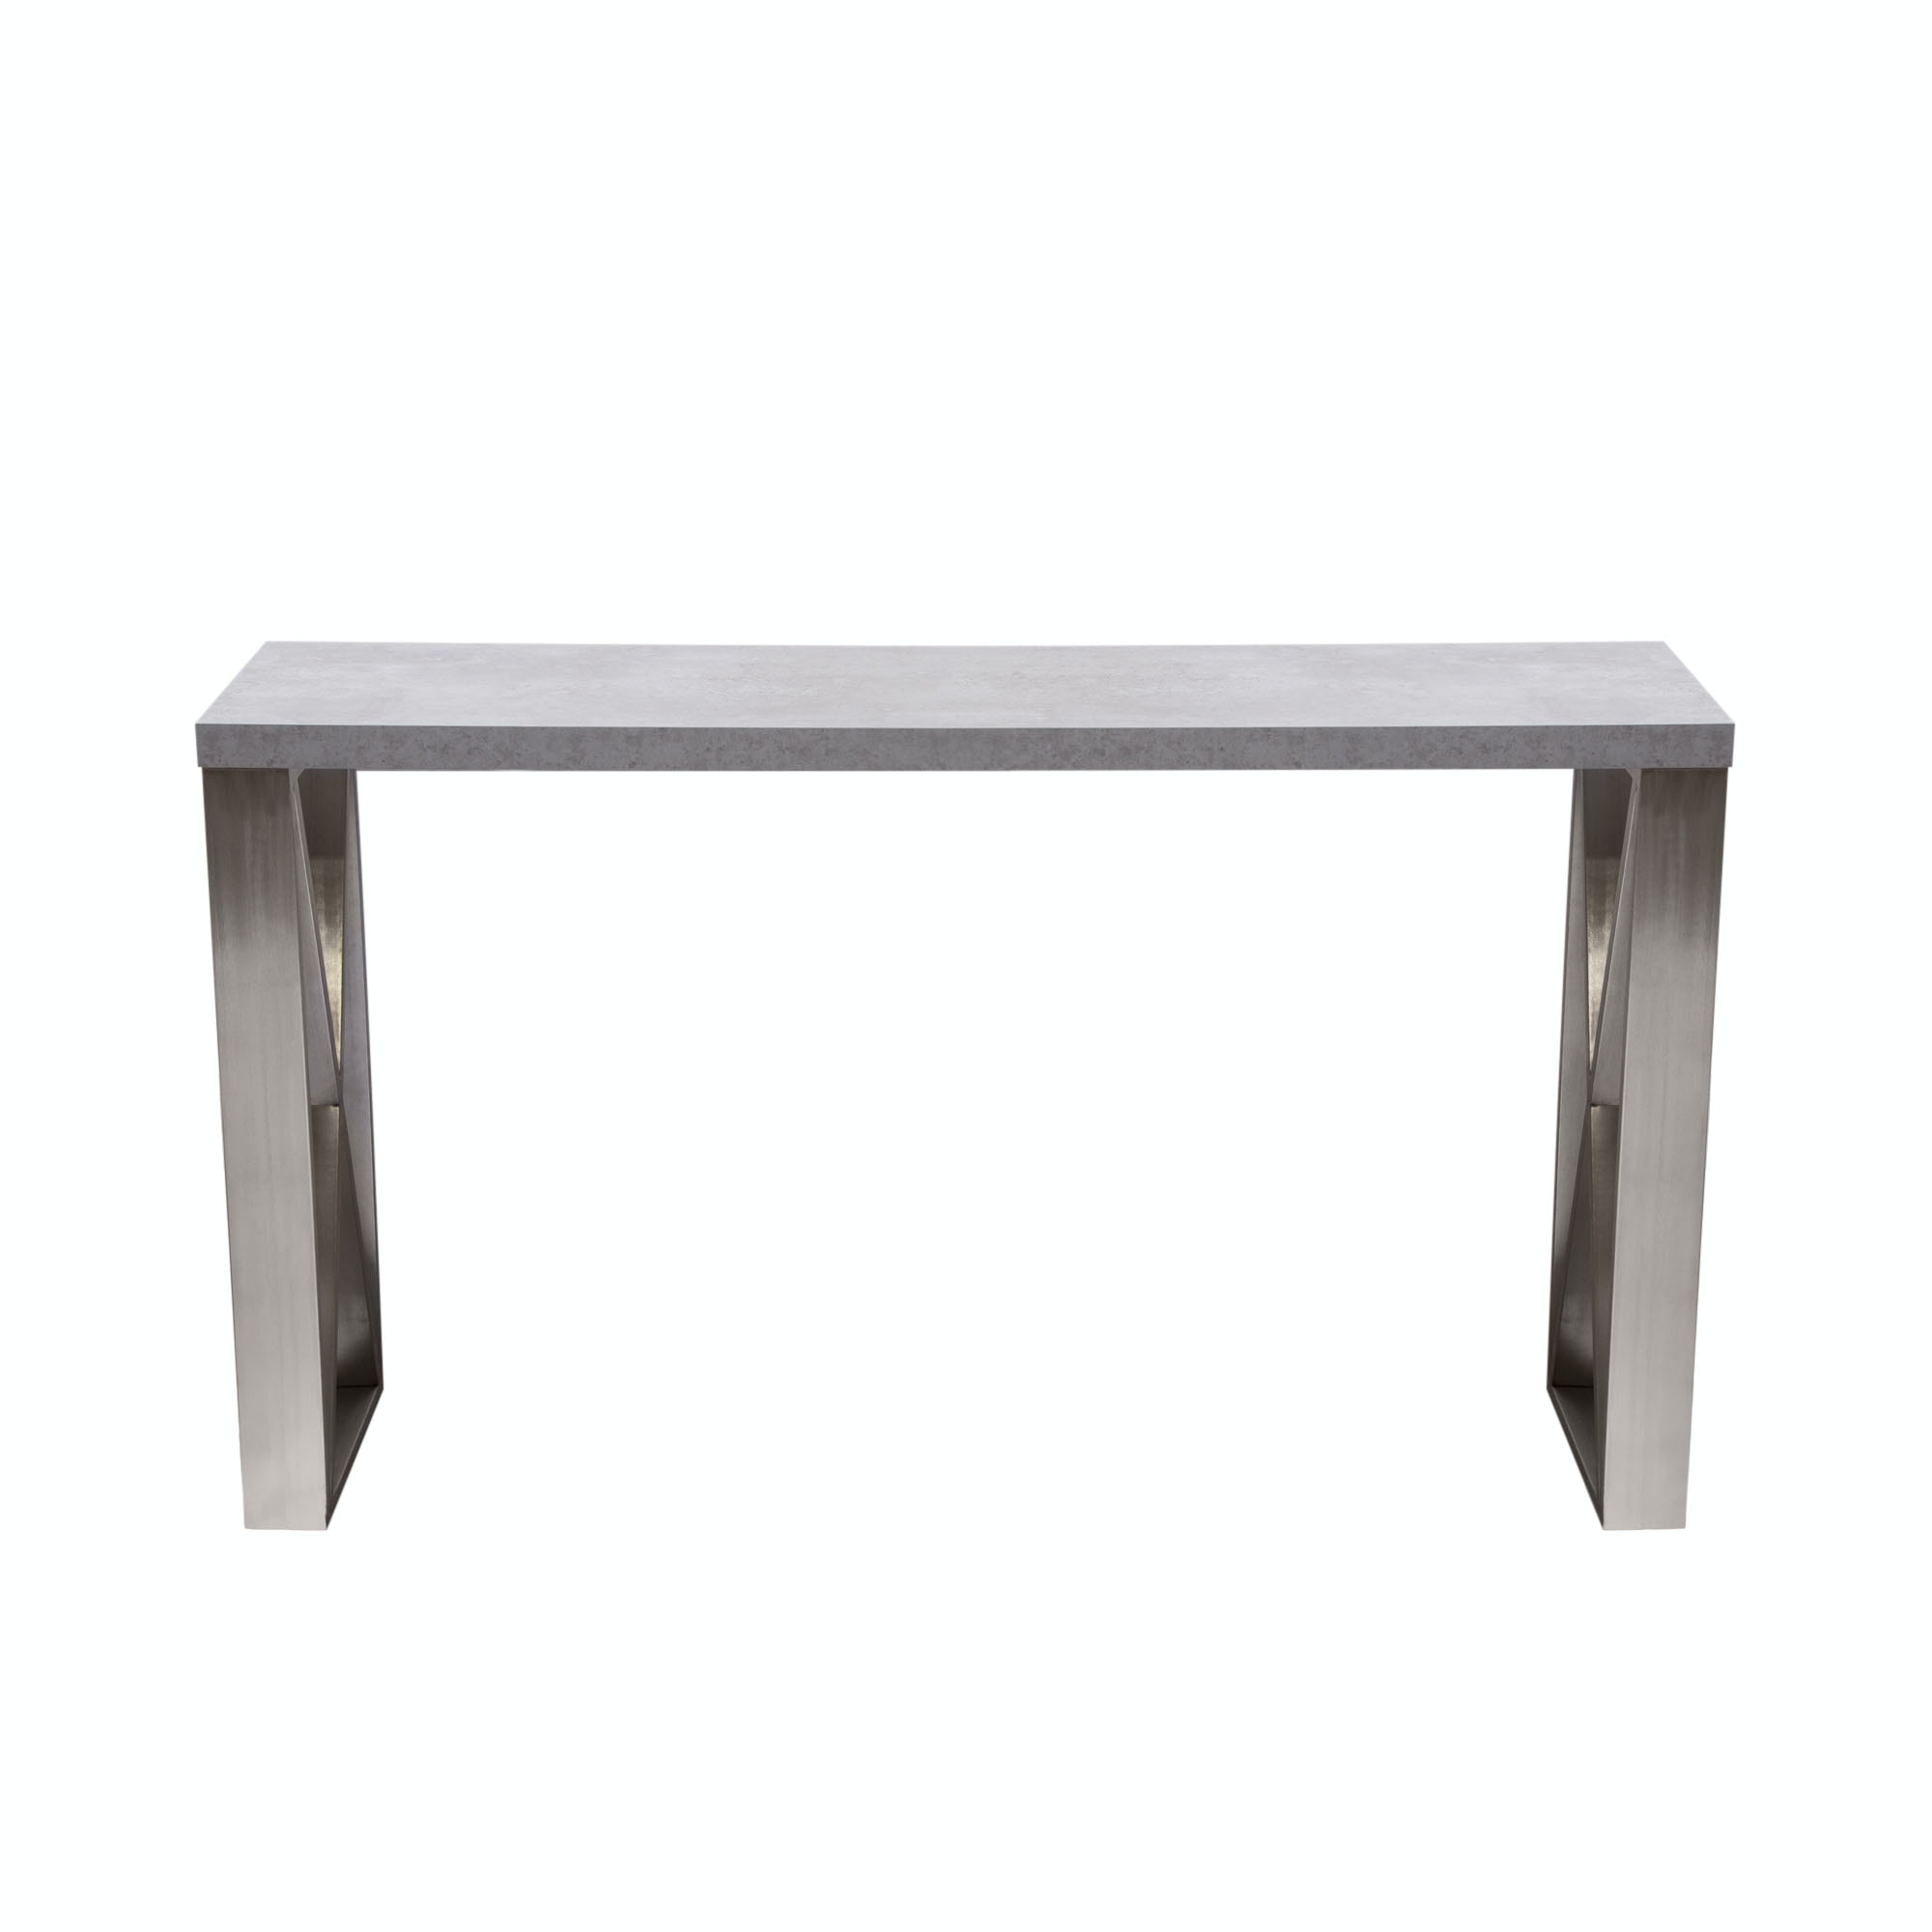 Diamond Sofa Living Room Carrera Console Table In 3d Marble Finish